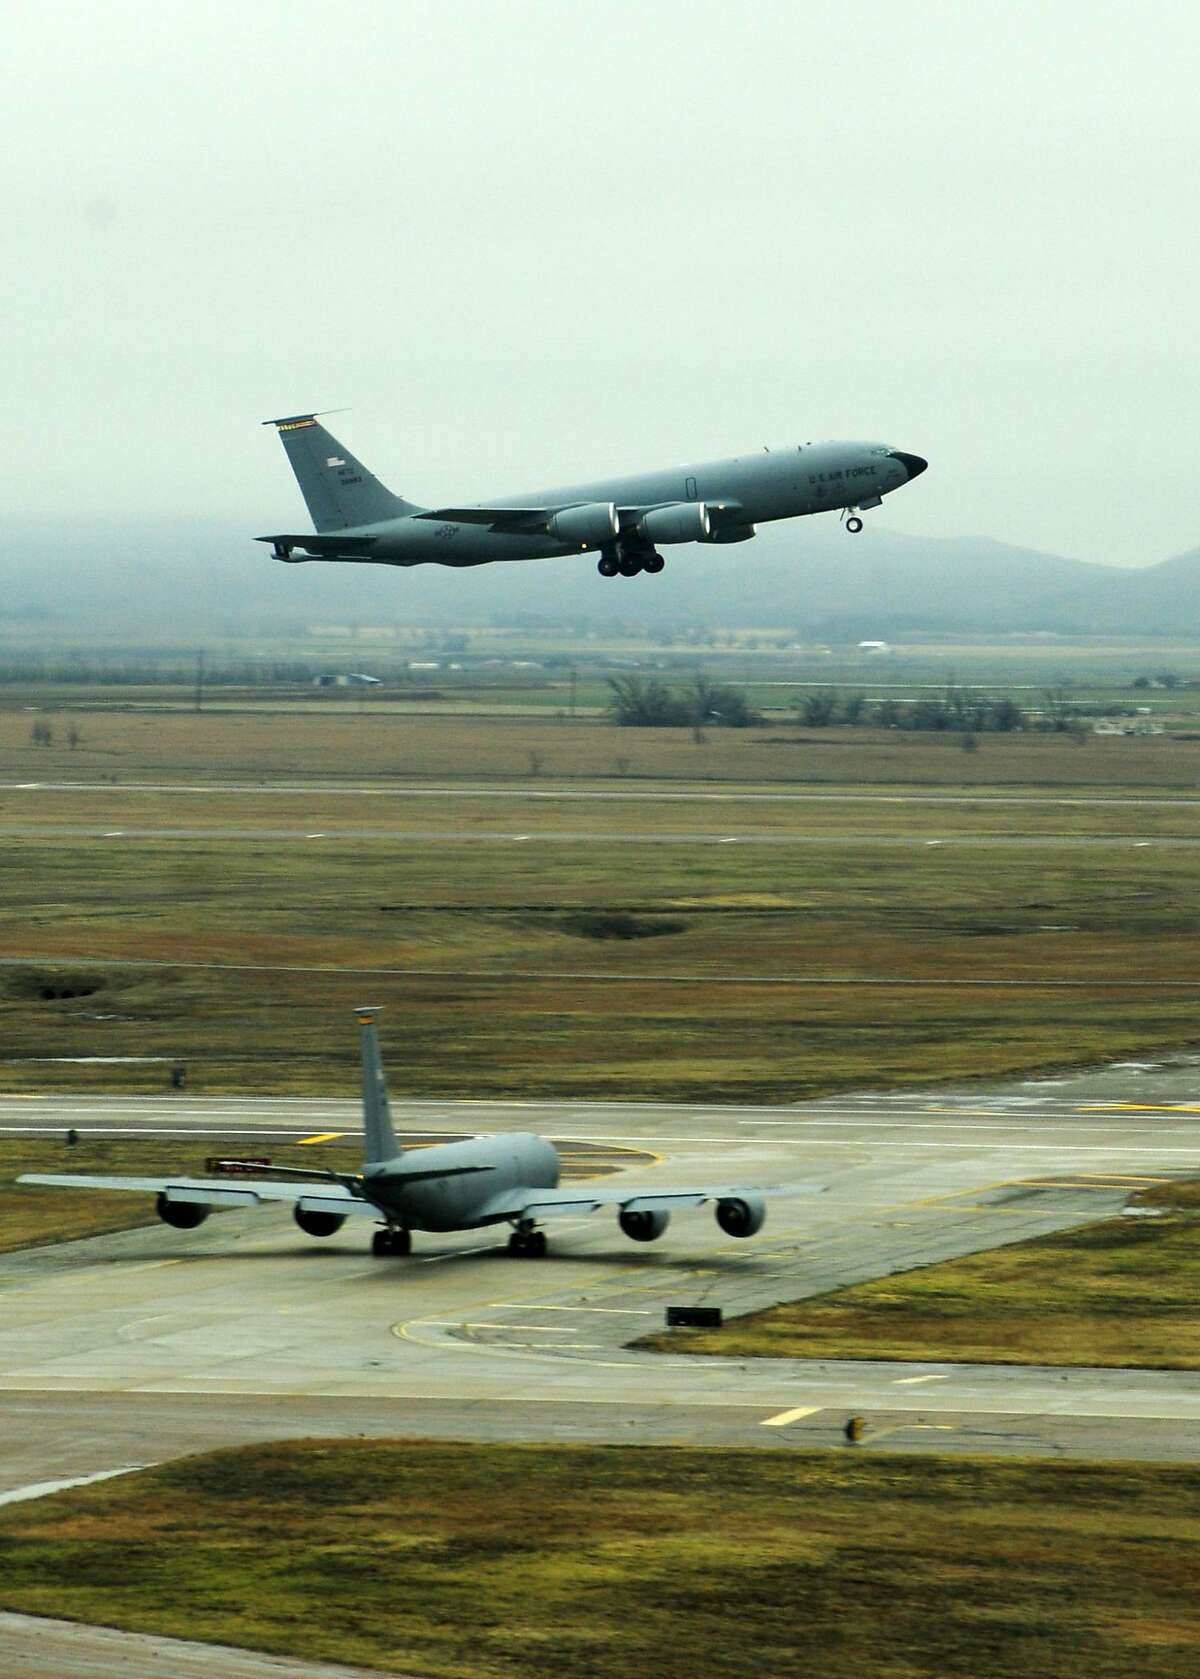 A new tanker will replace the Air Force's aging KC-135 Stratotanker fleet that refuels other aircraft in flight to extend their reach and capabilities.